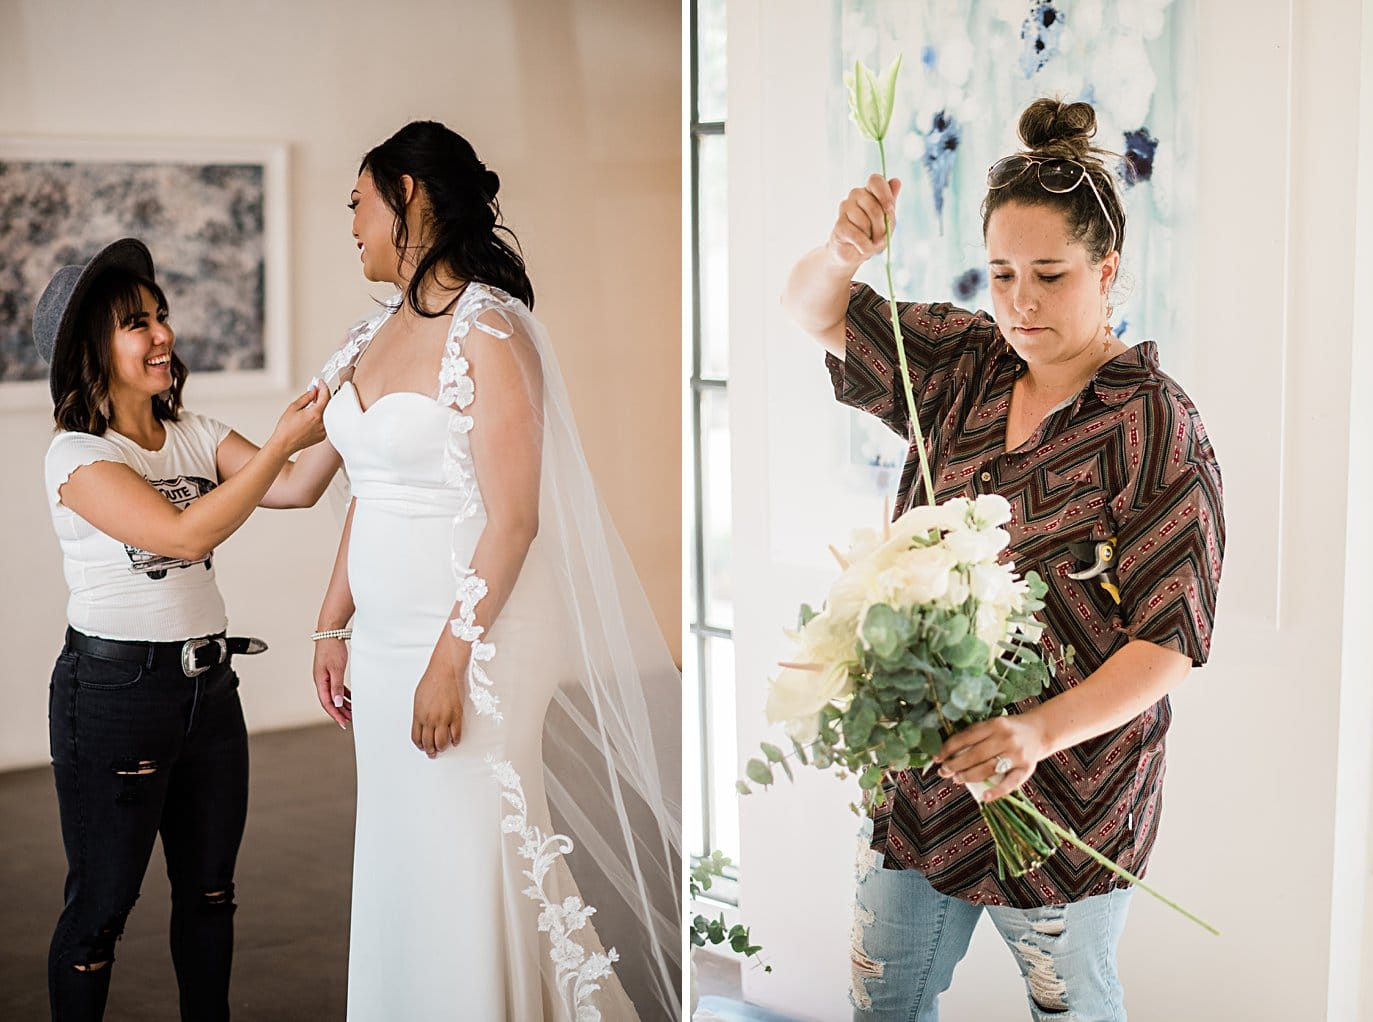 vendors getting ready for styled session at Walker Fine Art Gallery Wedding by Fort Collins Wedding Photographer Jennie Crate